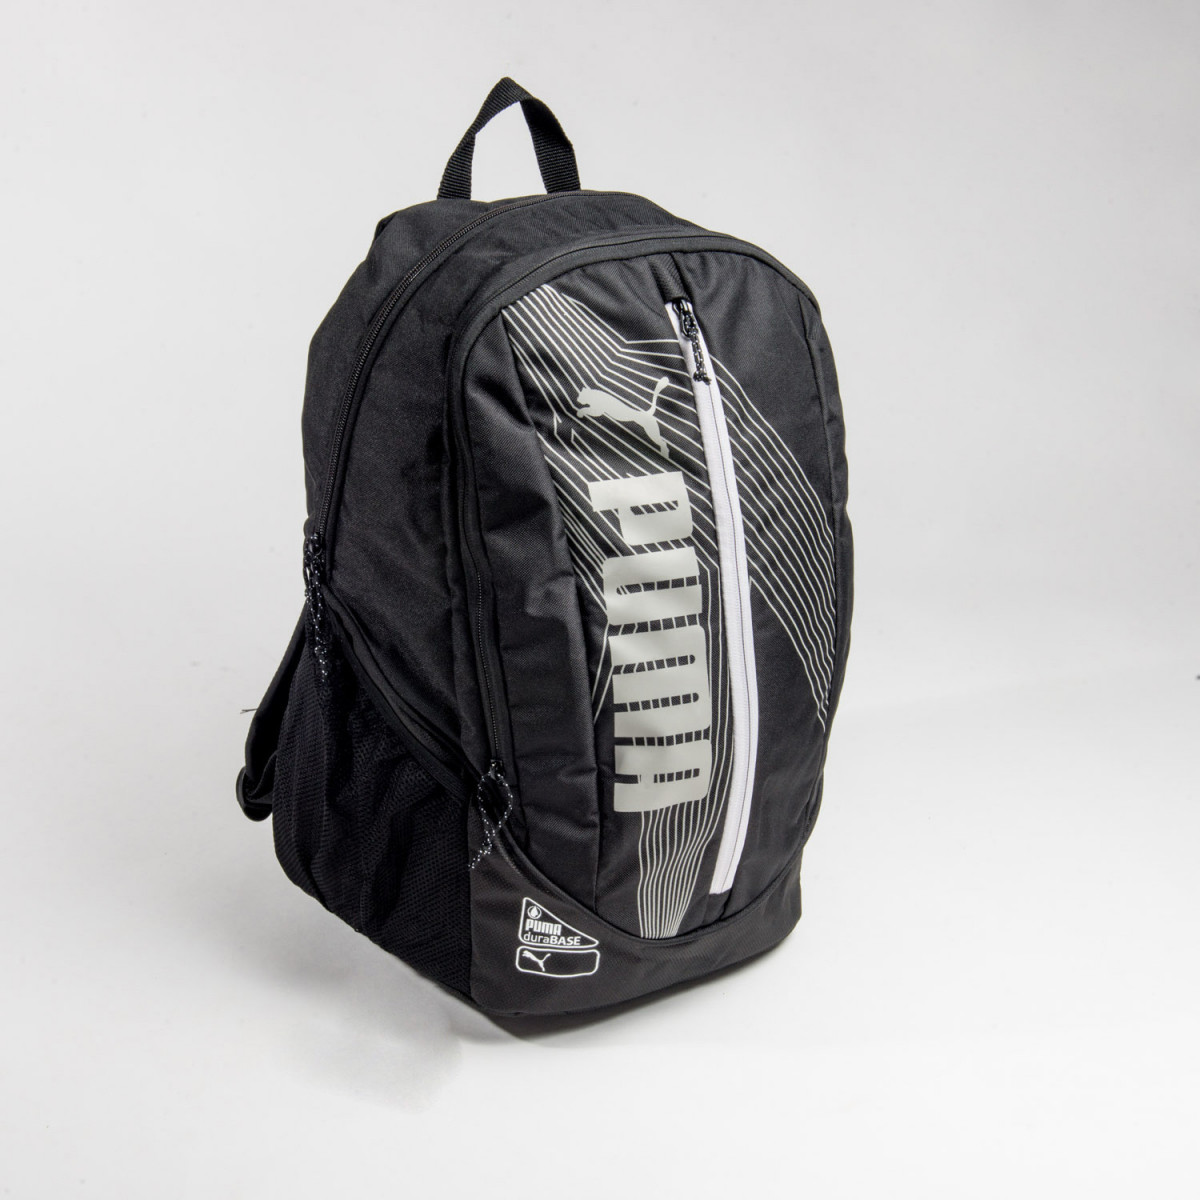 MOCHILA PUMA DECK BACKPACK